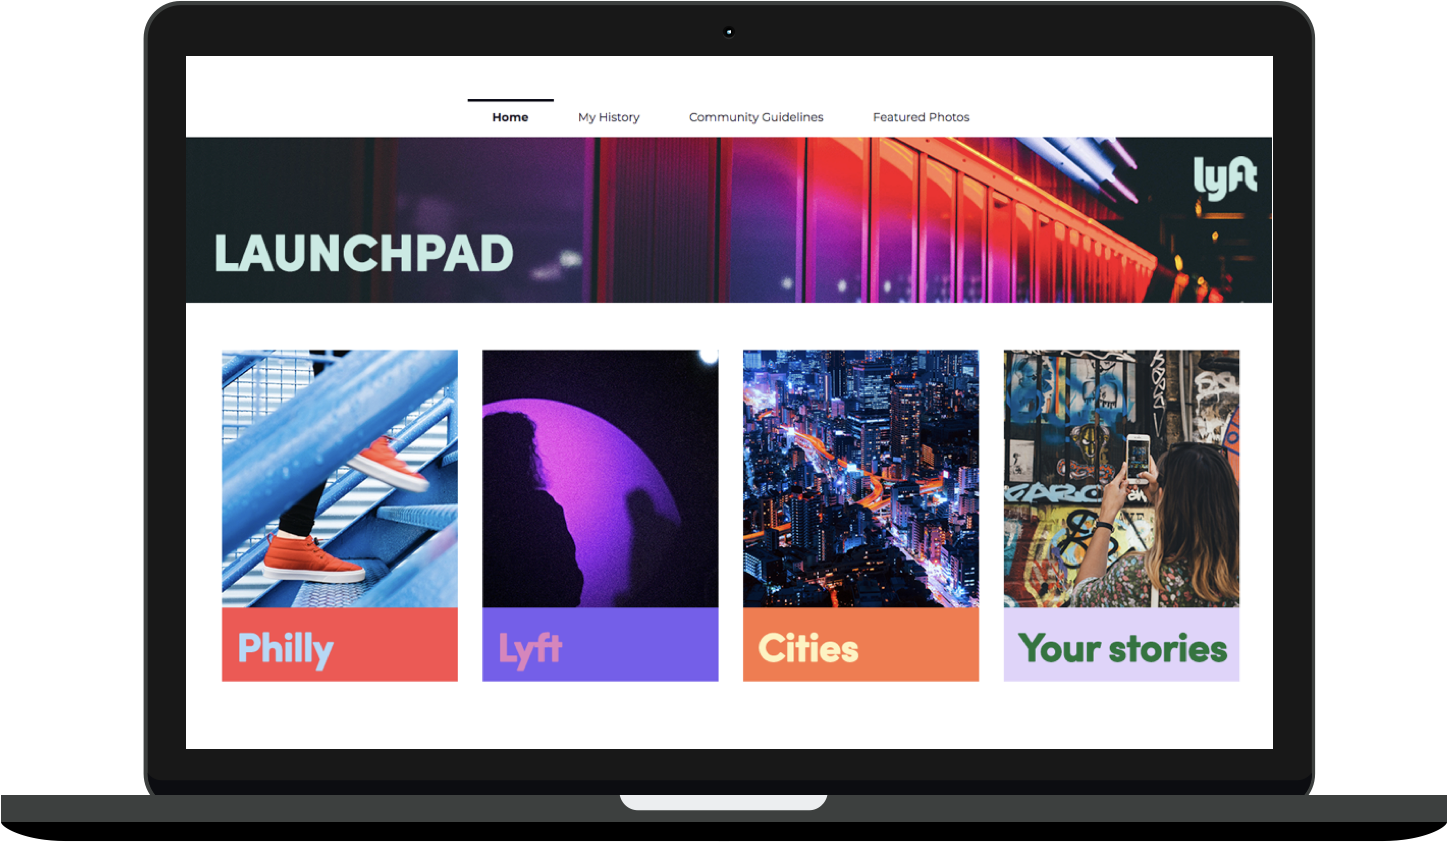 A Macbook screen depicting the Launchpad platform. There are four main sections: Philly (with a photo of feet climbing stairs), Lyft (with a photo of people silhouetted against a glowing orb), Cities (with a photo of a neon-colored skyline), and Your Stories (with a photo of a woman taking a picture of graffiti with her phone).